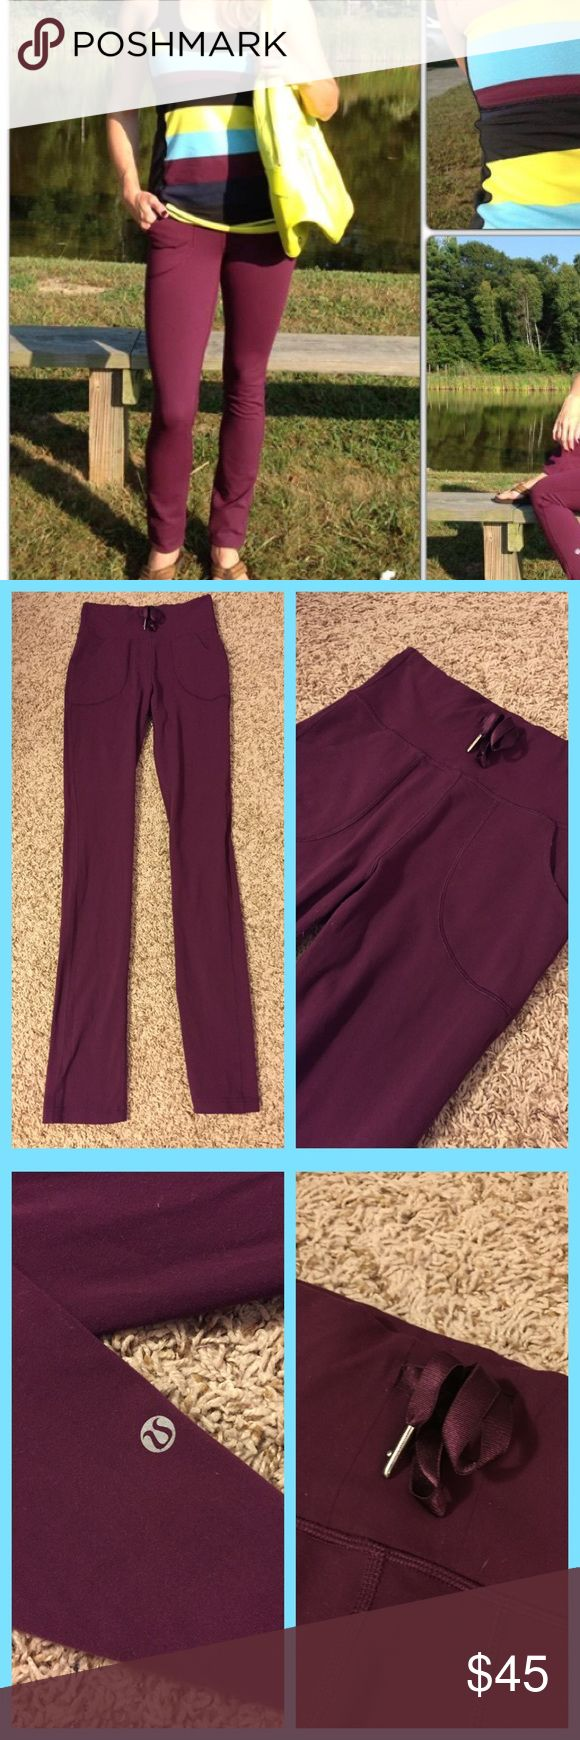 💕Lululemon Skinny Will Plum Pants ~ 6💕 No major issues. A little sticky, pilling at the gusset, some threads poking out near waistband. lululemon athletica Pants Leggings